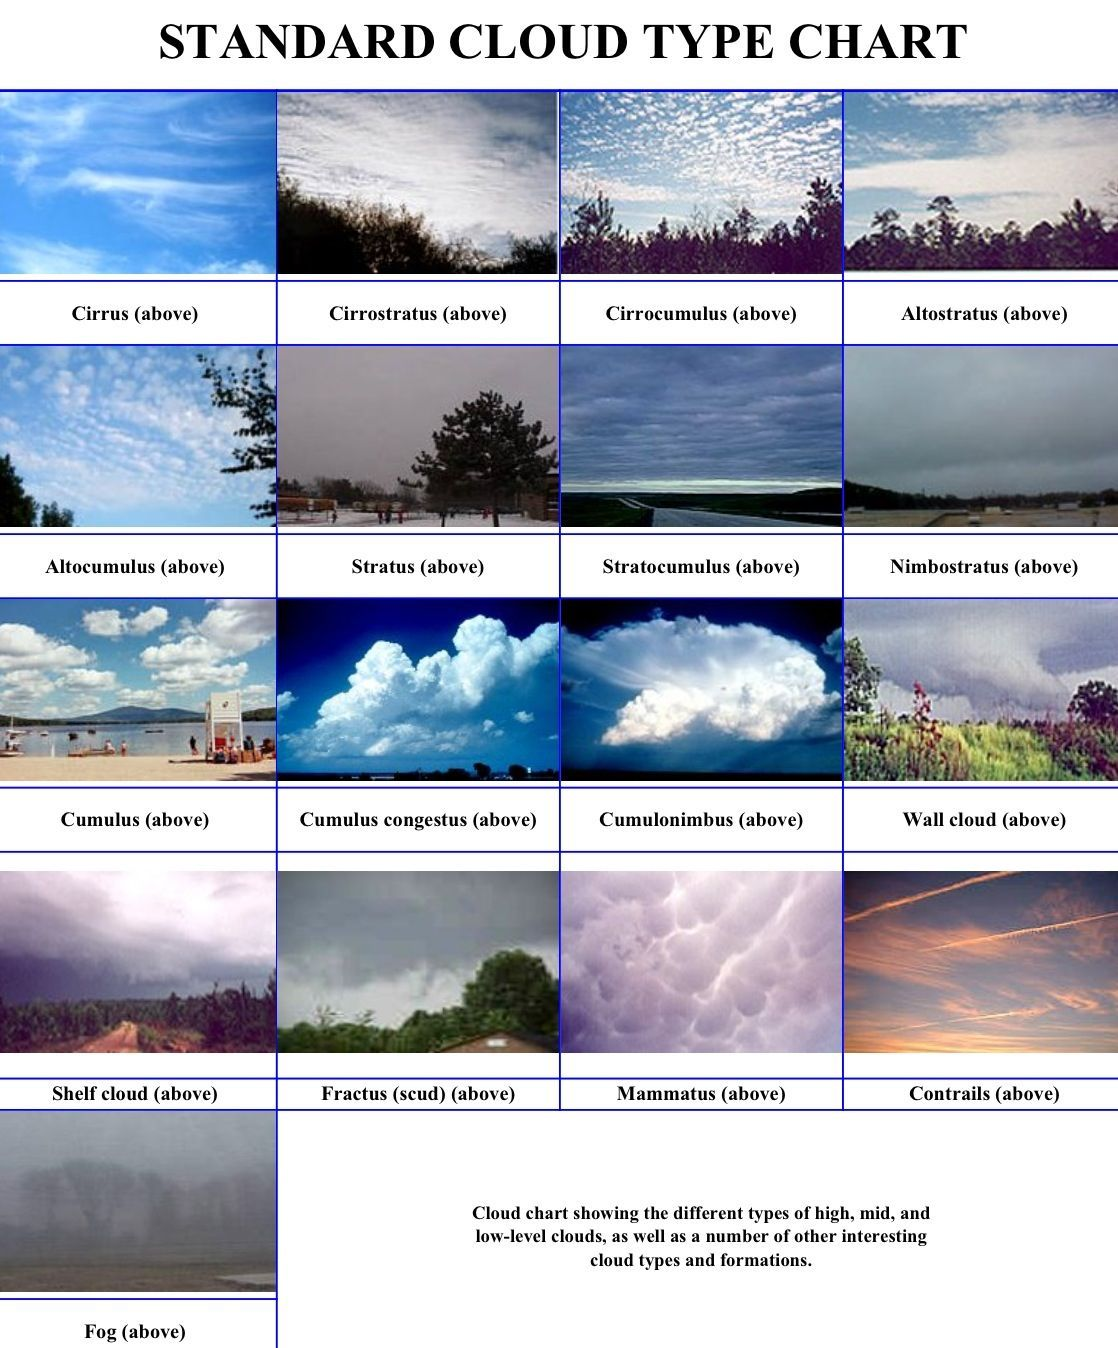 worksheet Clouds Worksheet cloud types i believe the are forgetting new asperatus clouds